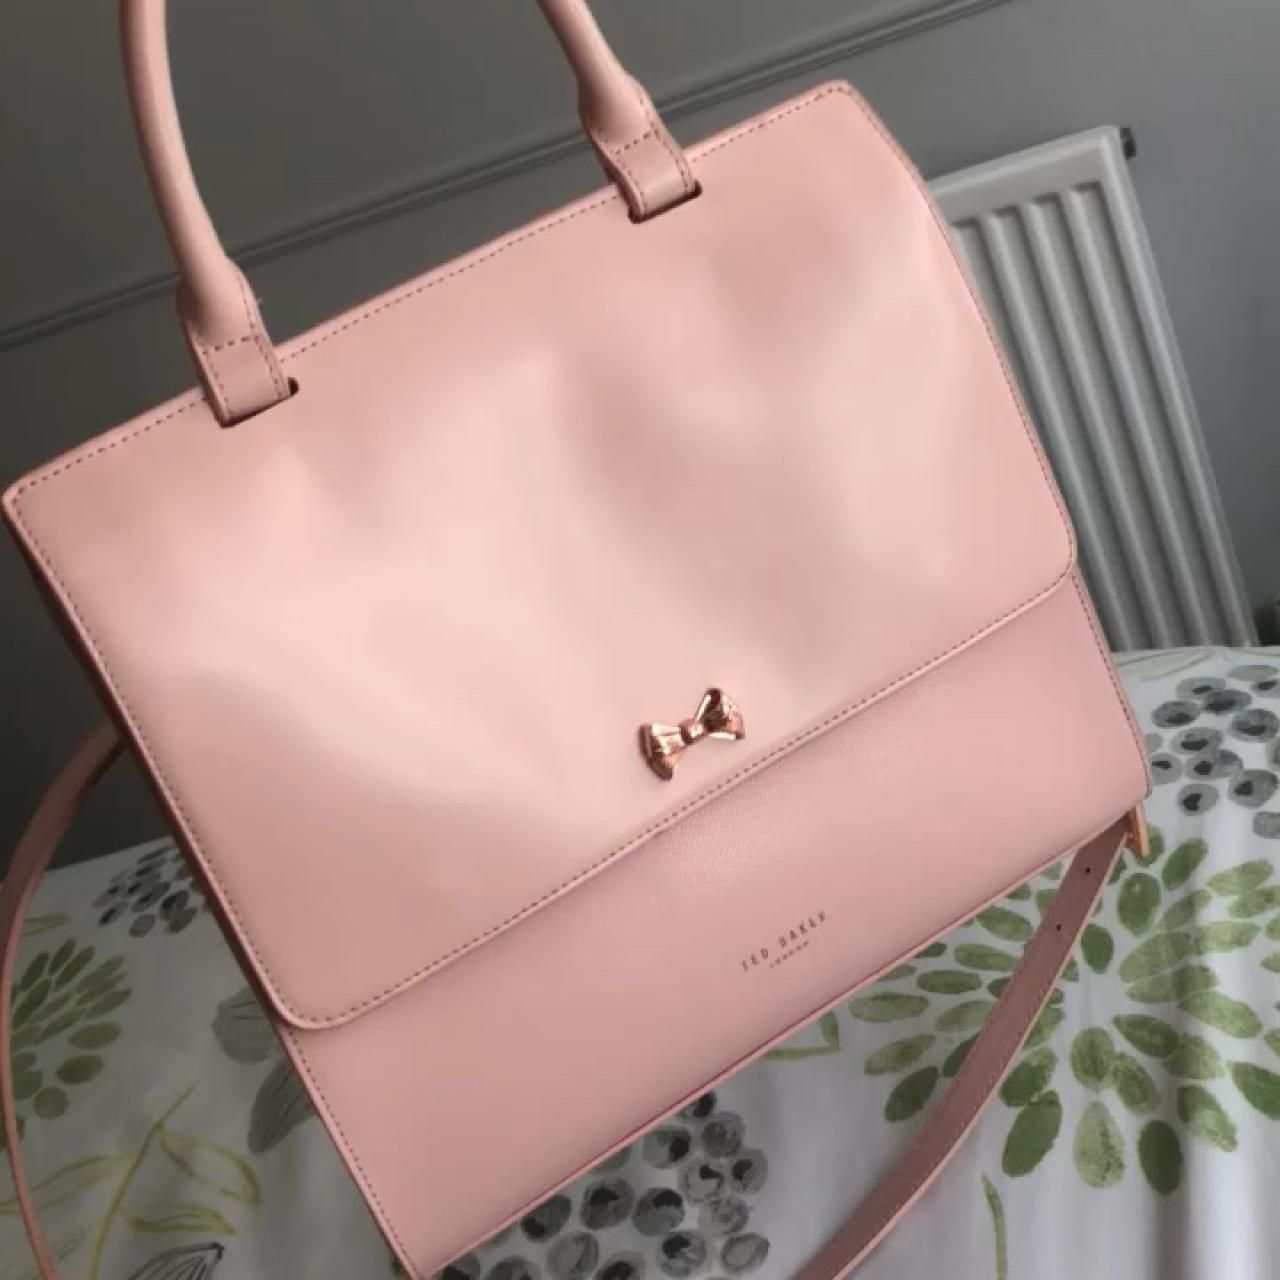 b4c80e330e9c Genuine Pink ted baker handbag Rrp £180Amazing quality bag and has multiple  compartments to fit everything you needComes with detachable longer strap  that ...